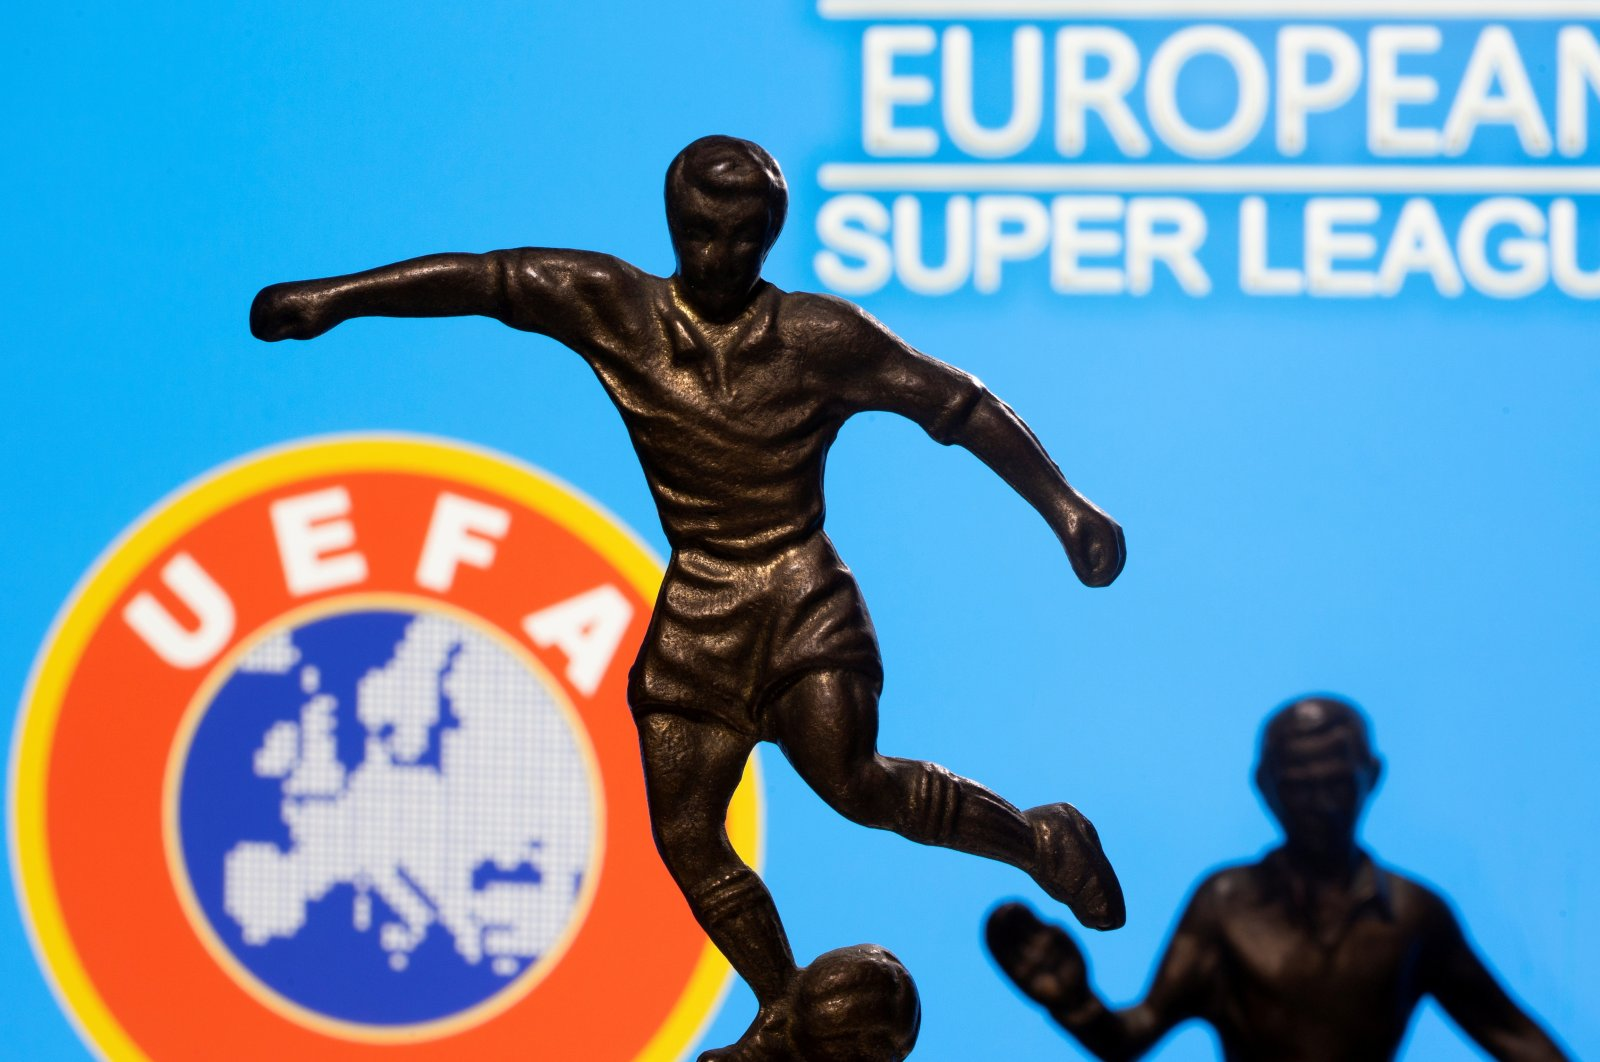 """Metal figures of football players in front of the words """"European Super League"""" and the UEFA logo are pictured in this illustration, April 20, 2021. (Reuters Photo)"""